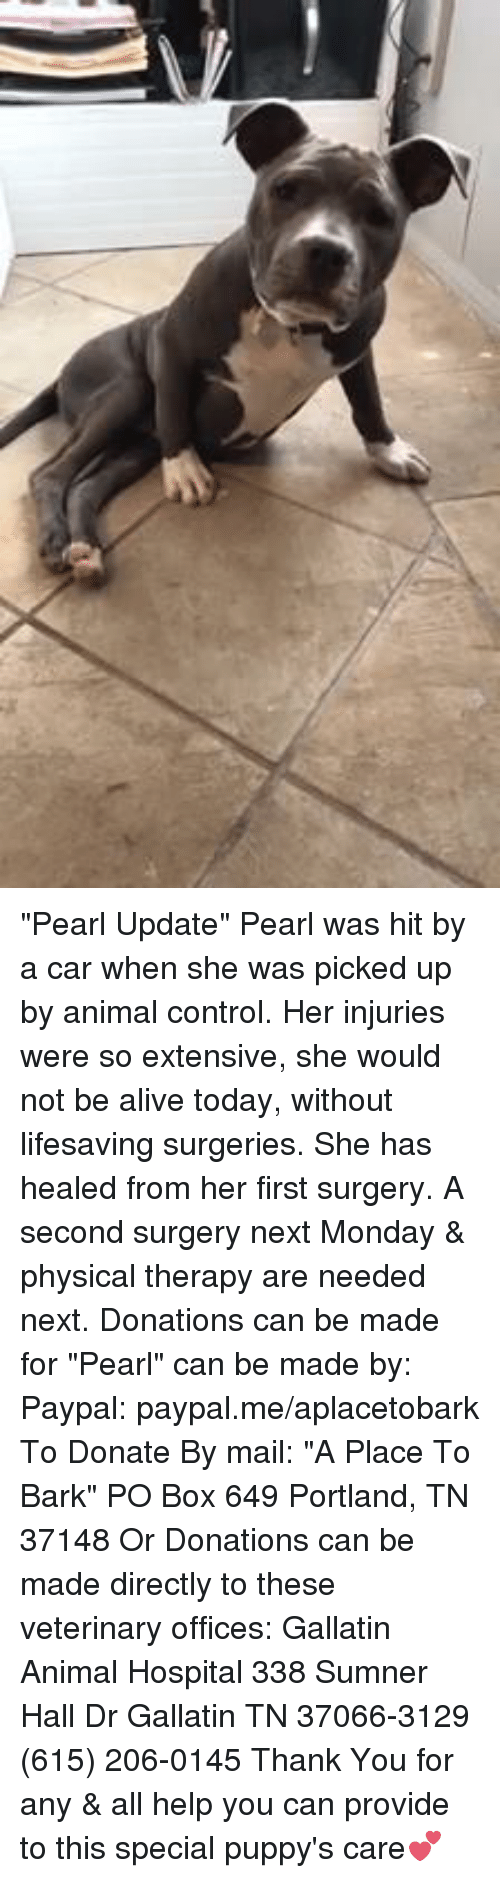 "physic: ""Pearl Update"" Pearl was hit by a car when she was picked up by animal control.  Her injuries were so extensive, she would not be alive today, without lifesaving surgeries. She has healed from her first surgery.   A second surgery next Monday & physical therapy are needed next. Donations can be made for ""Pearl"" can be made by: Paypal: paypal.me/aplacetobark To Donate By mail:  ""A Place To Bark"" PO Box 649 Portland, TN 37148 Or Donations can be made directly to these veterinary offices: Gallatin Animal Hospital 338 Sumner Hall Dr Gallatin TN 37066-3129 (615) 206-0145  Thank You for any & all help you can provide to this special puppy's care💕"